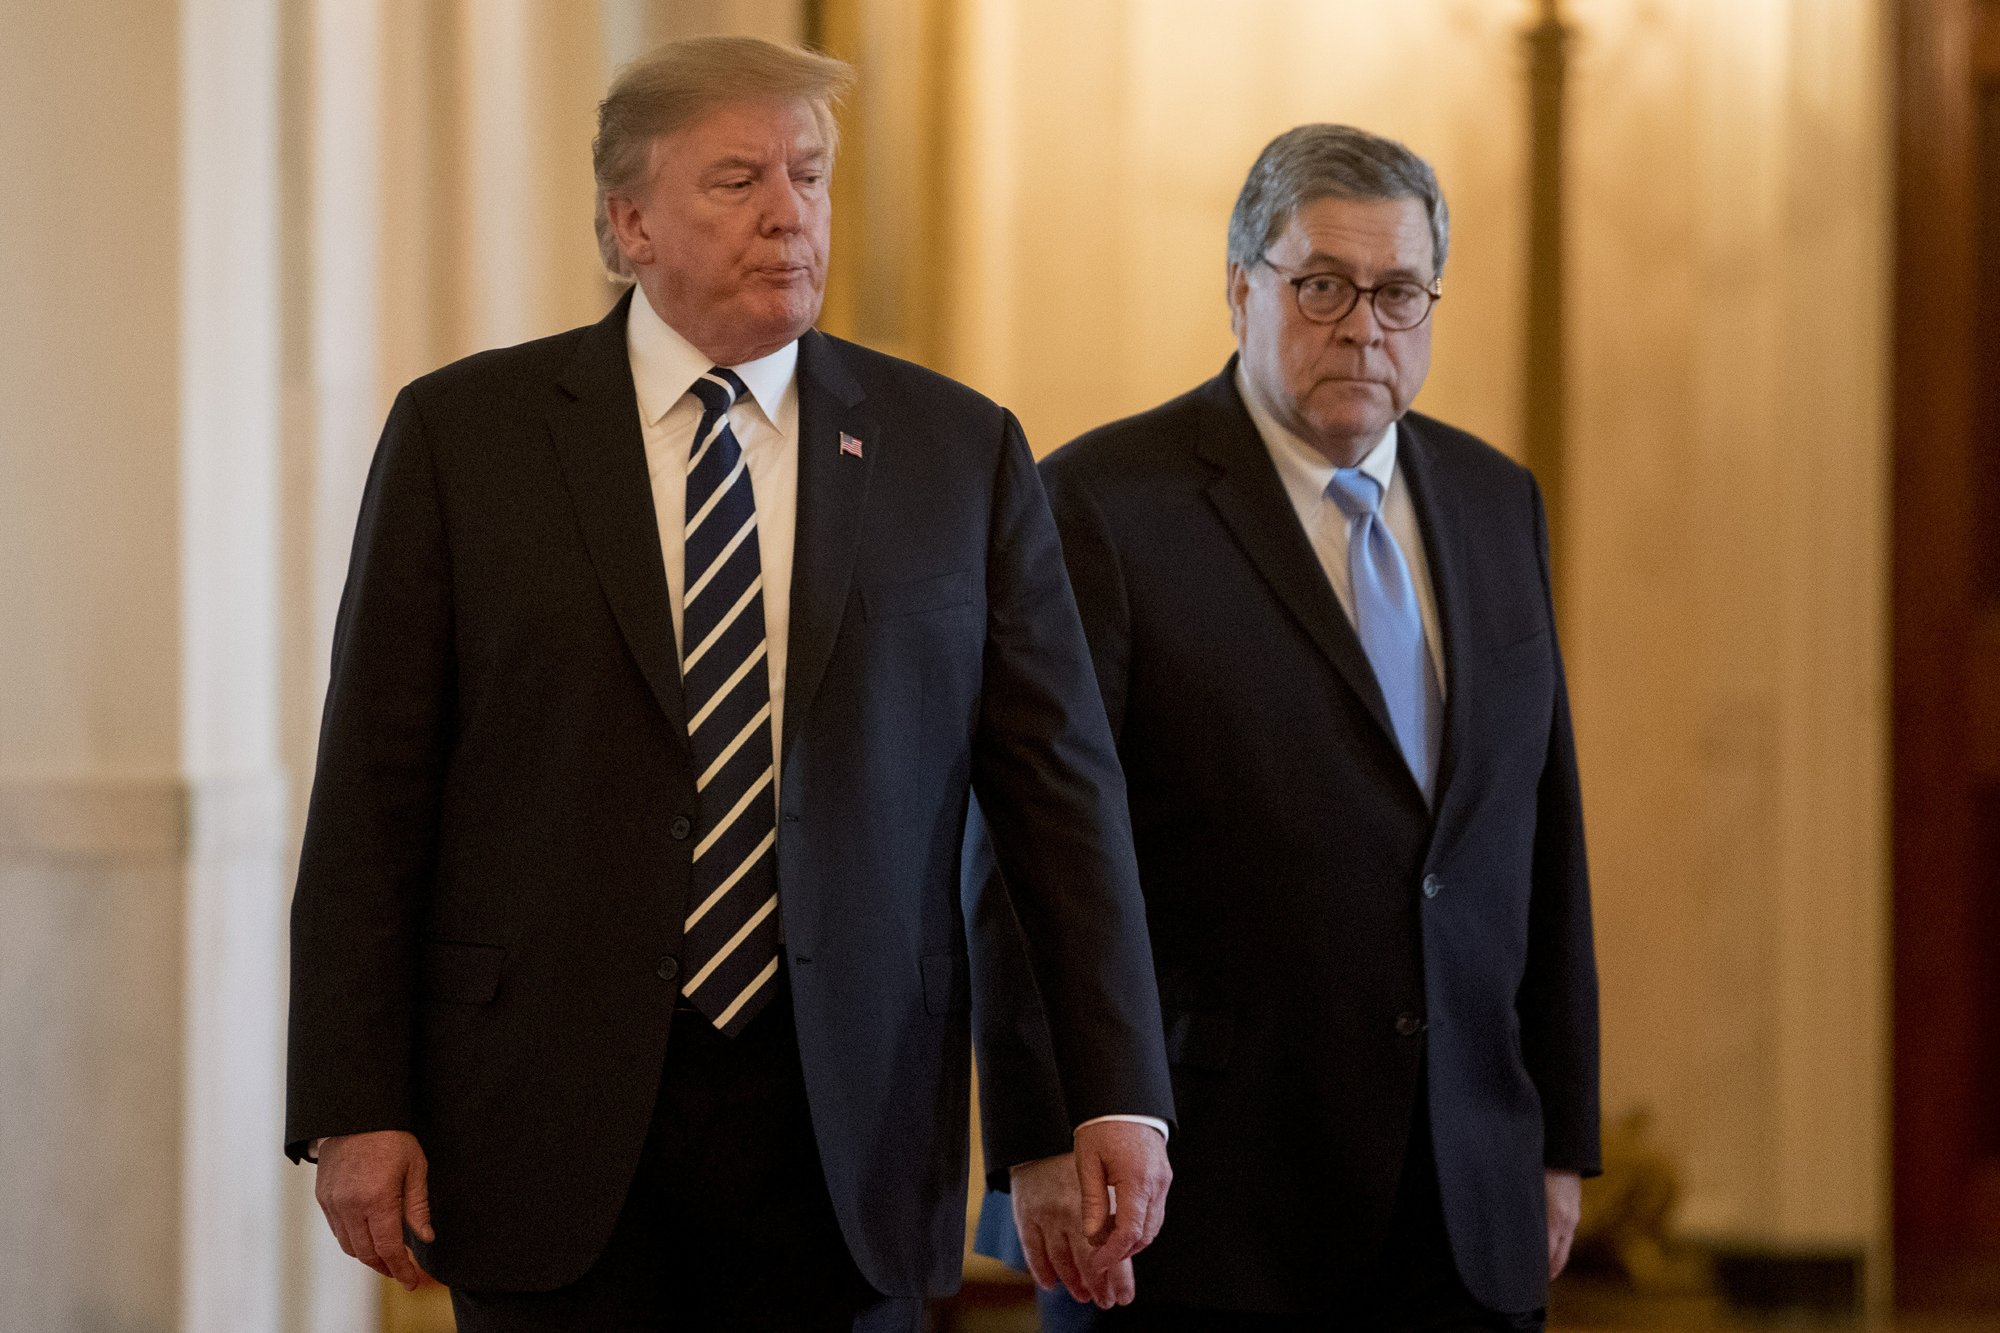 President Trump and William Barr